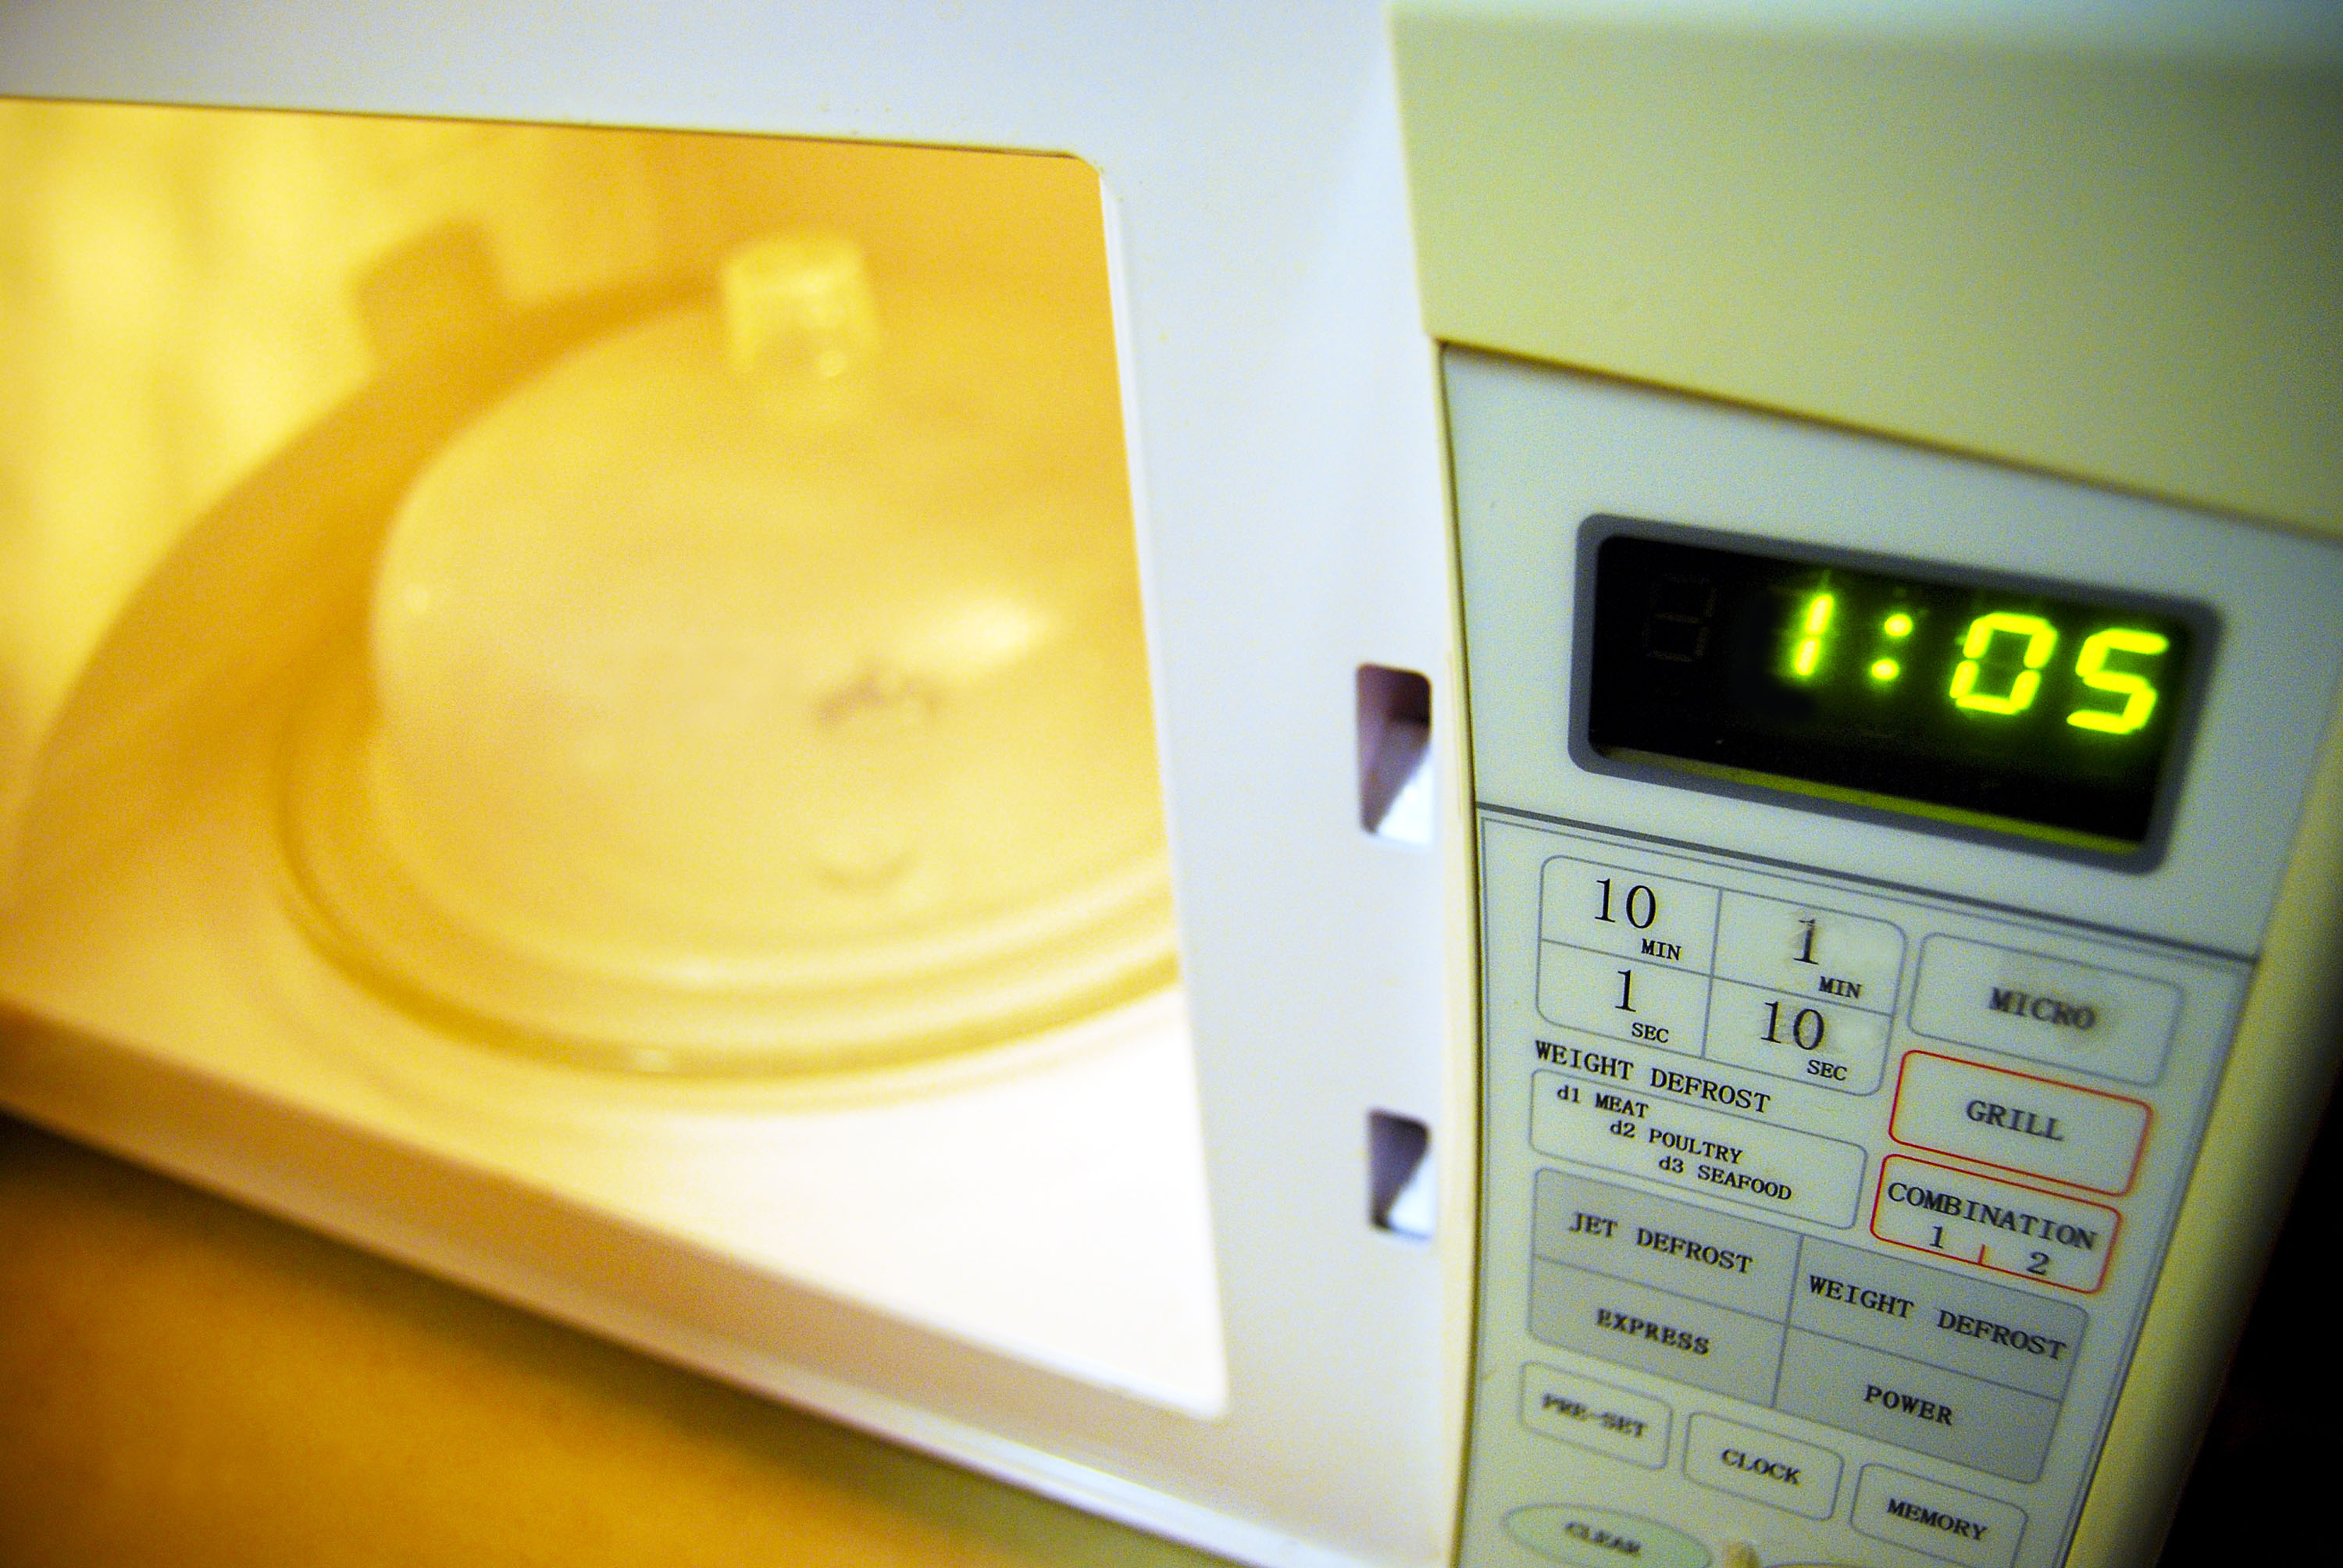 effects of microwave on food and But if microwave ovens contribute to those pandemic problems, it's not because of some mysterious effect of microwave radiation on food it's more likely because microwaves allow us to cook food quickly and consume it quickly.